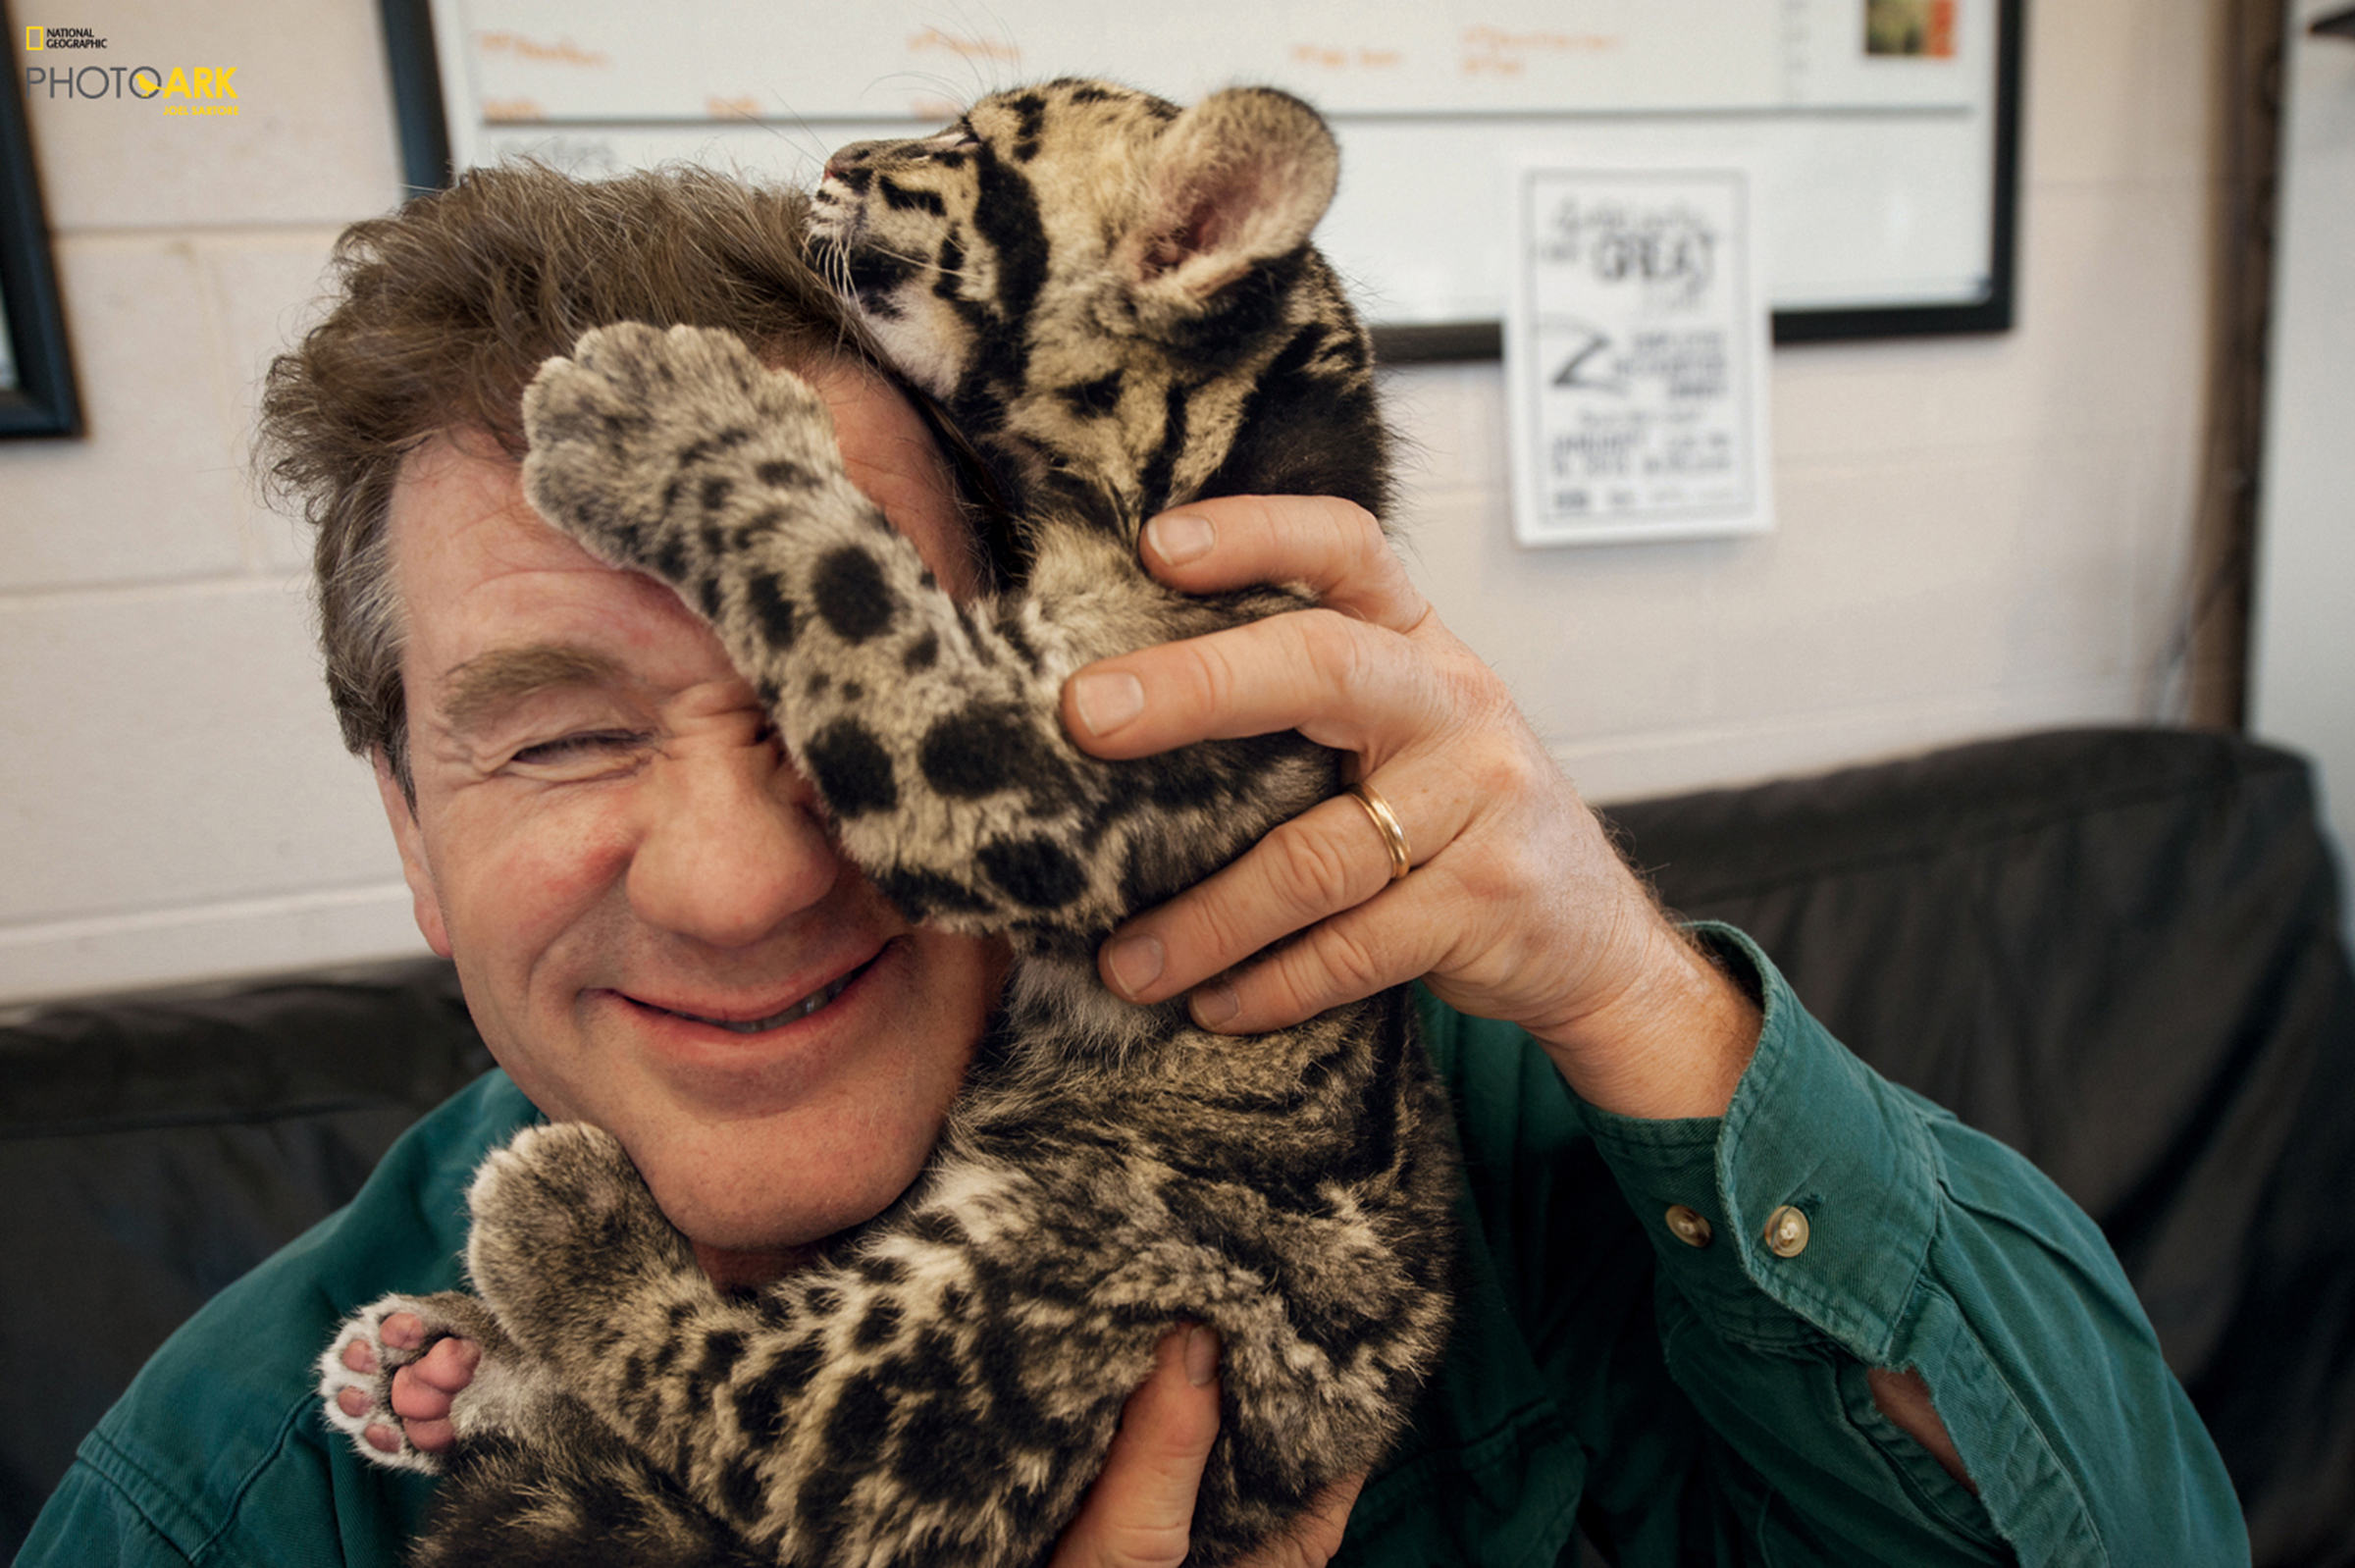 """A clouded leopard cub climbs on wildlife photographer Joel Sartore's head after a photo shoot at the Columbus Zoo in Ohio. The leopards, which live in Asian tropical forests, are illegally hunted for their spotted pelts. Sartore hopes to capture a single portrait of every species that's currently """"in human care"""" around the world for his Photo Ark project. Sartore recently visited the Utah's Hogle Zoo for a photo shoot."""